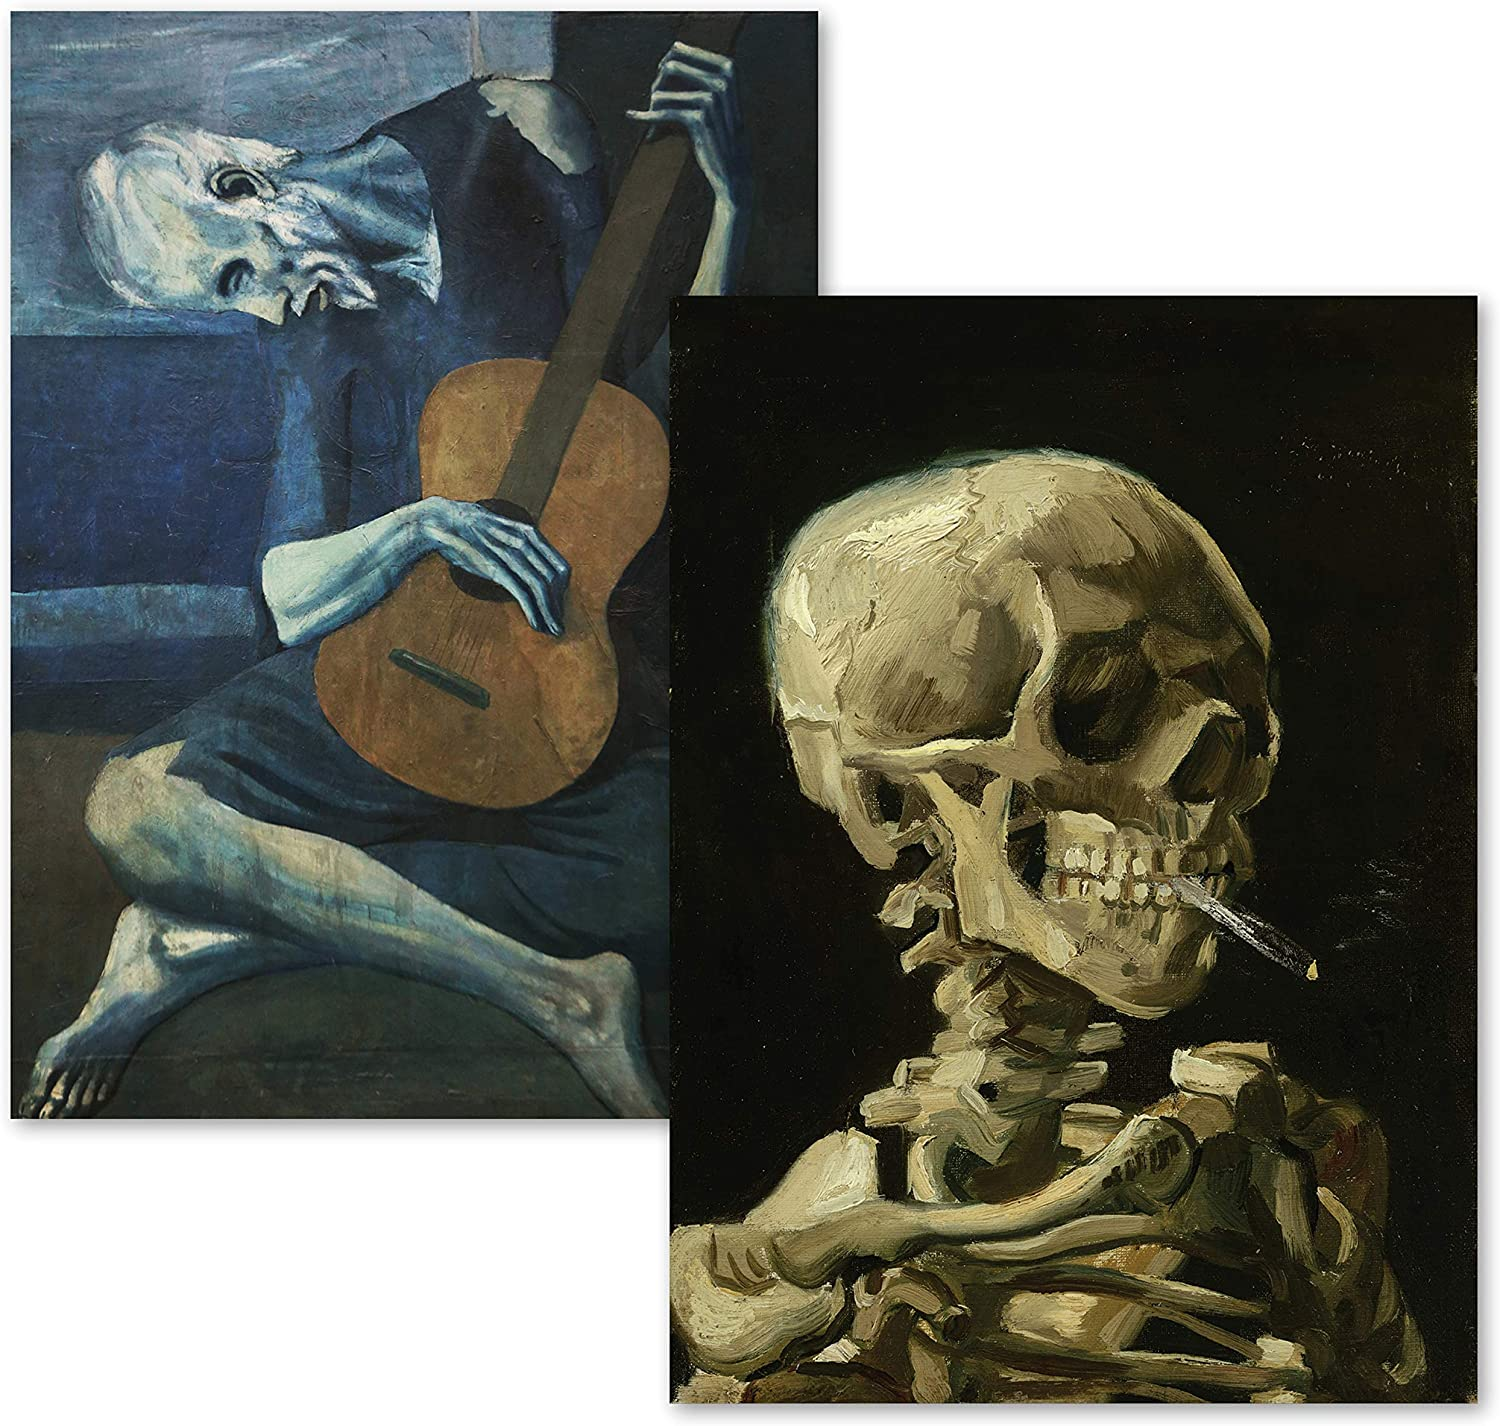 2 PACK - VAN GOGH SKELETON & THE OLD GUITARIST BY PABLO PICASSO POSTER PRINT SET - FINE ART (LAMINATED 18 X 24)